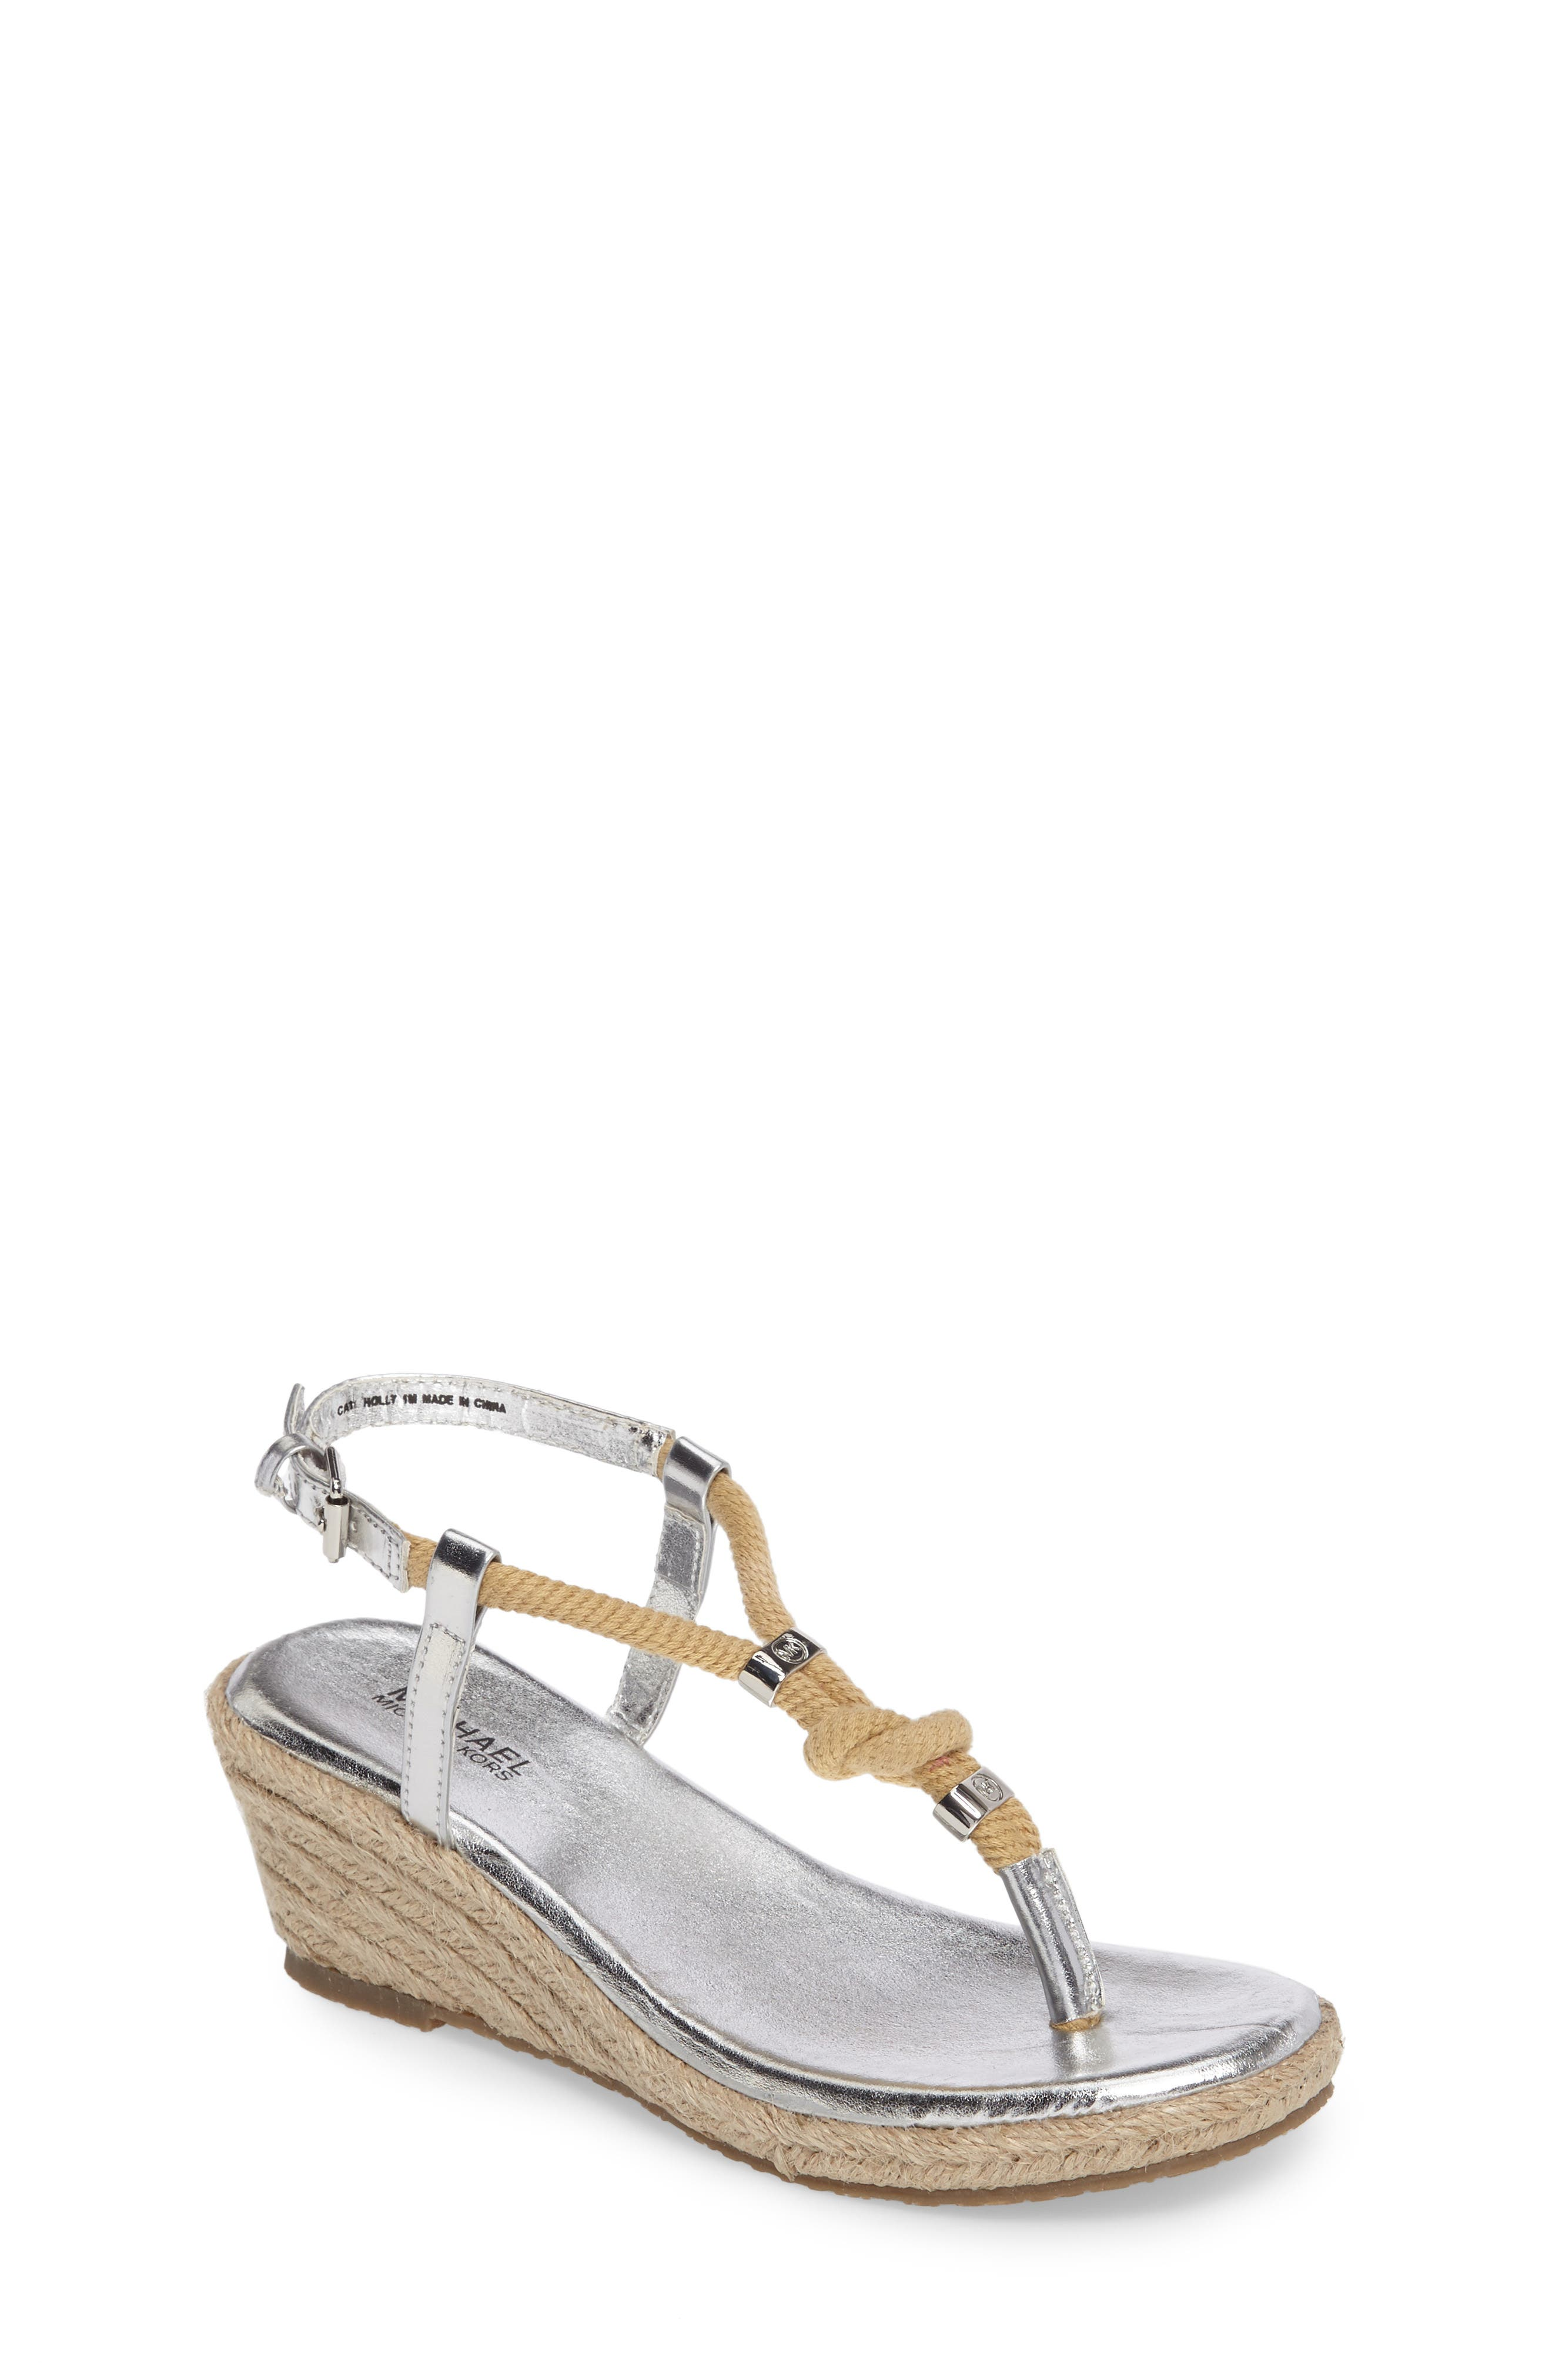 MICHAEL Michael Kors Cate Holly Wedge (Toddler, Little Kid & Big Kid)